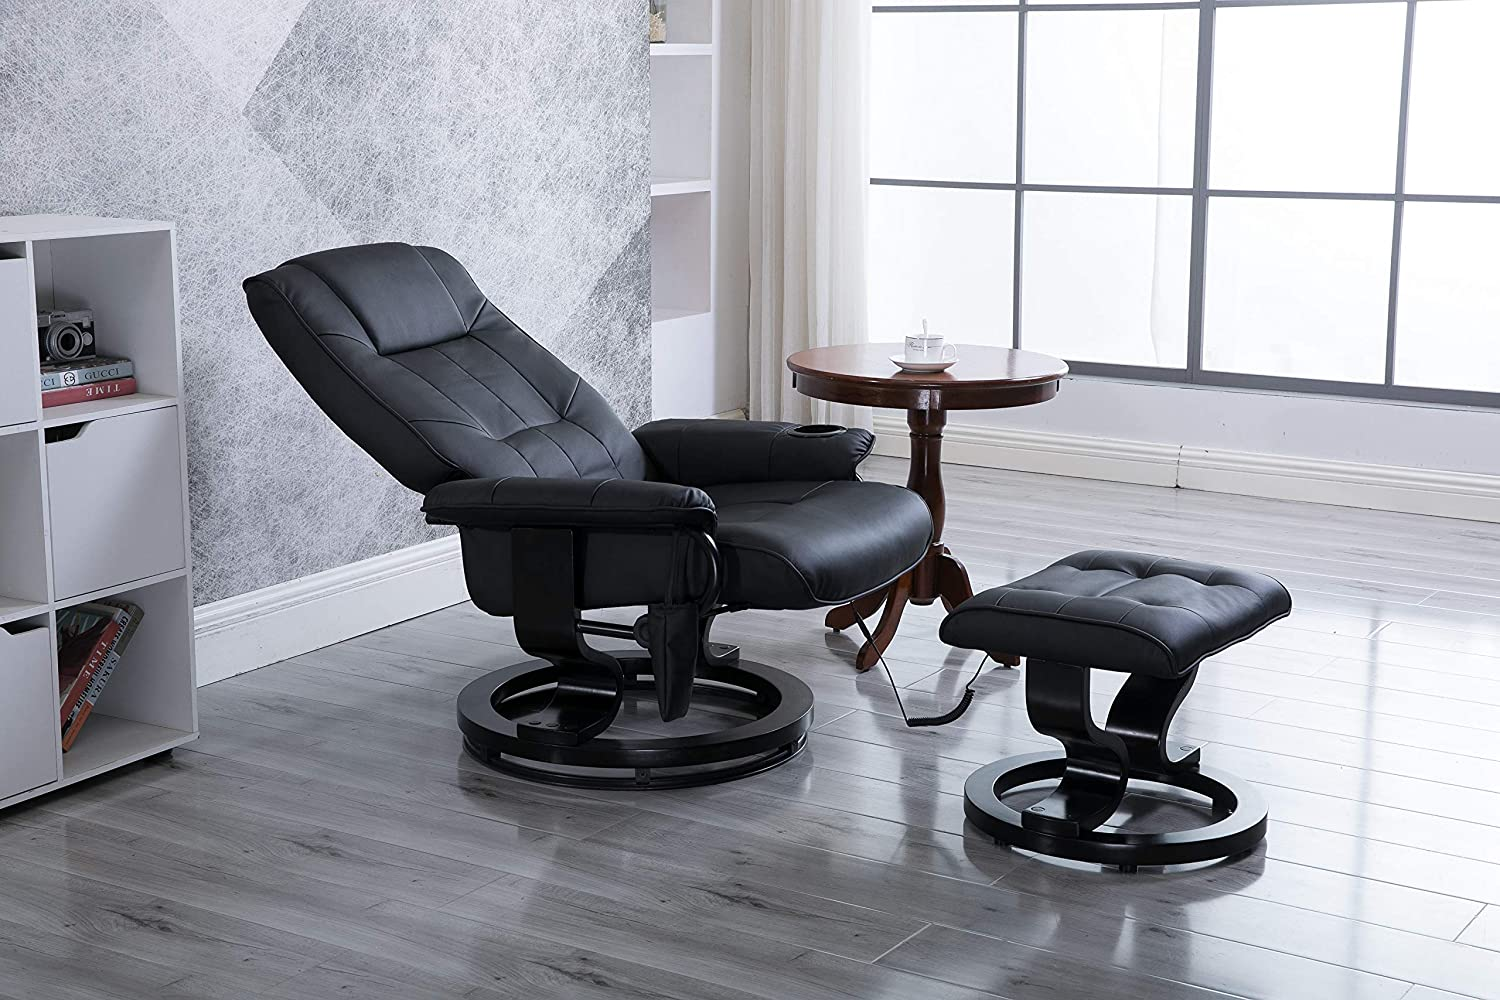 windaze Massage Leather Recliner Ottoman Living Room Chair Set 8-Vibration Motors Heat with Swiveling Mahogany Wood Base and Cup Holder Black